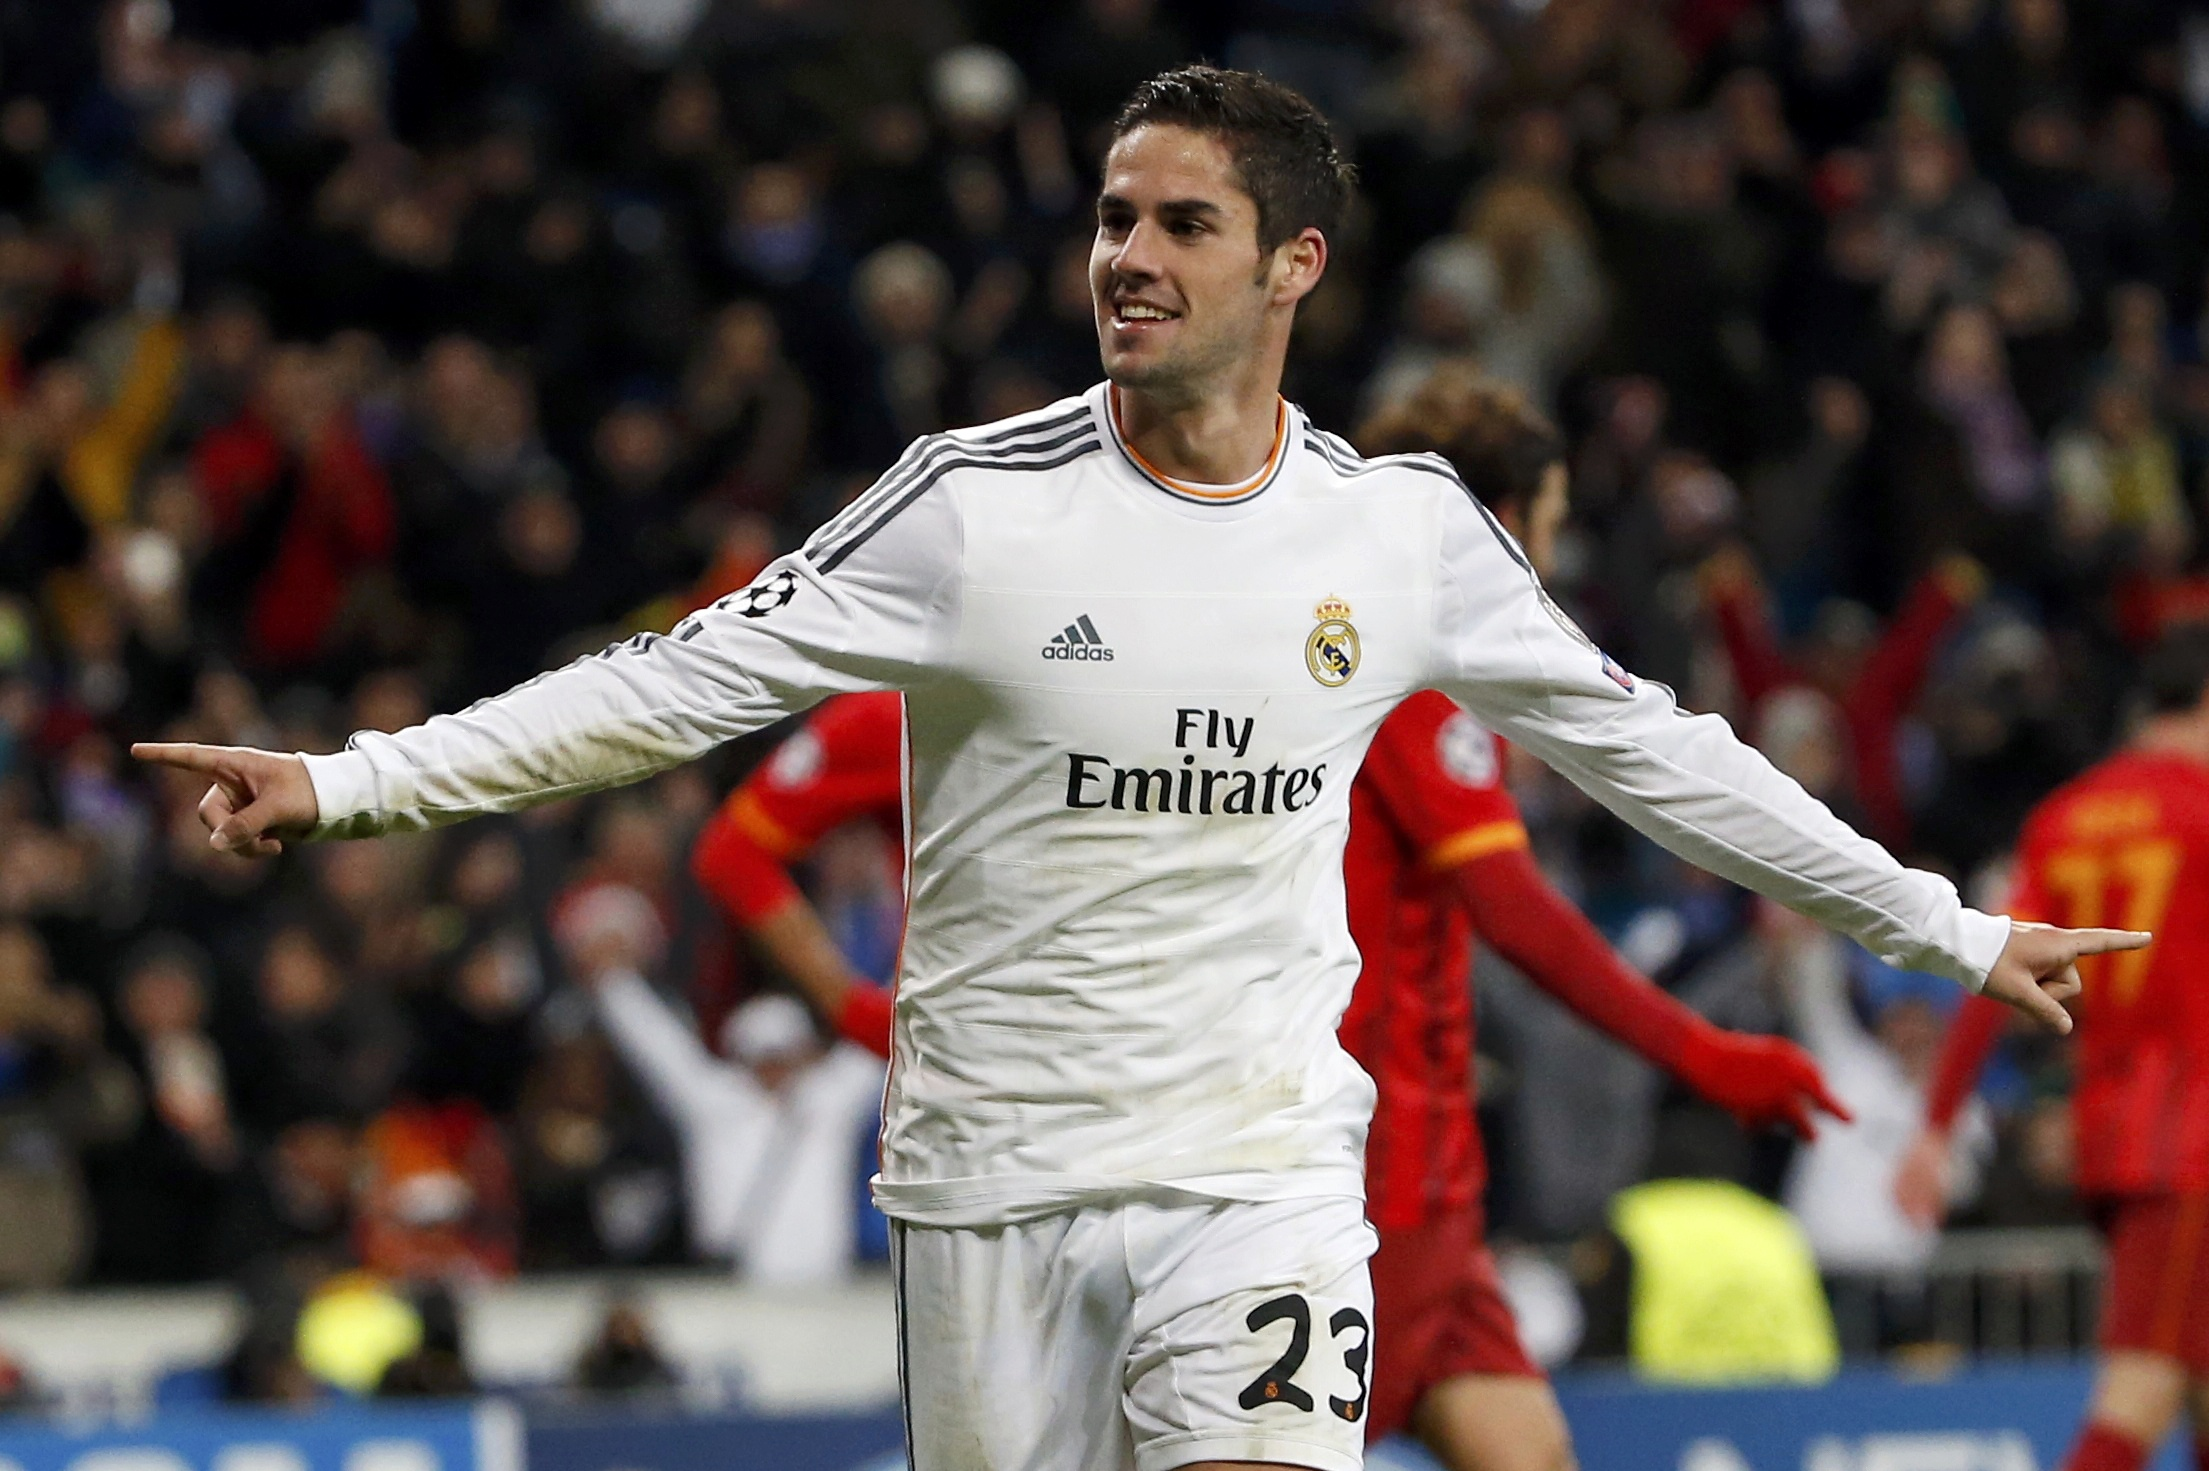 Wallpapers Hd Real Madrid Wallpaper Isco Real Madrid